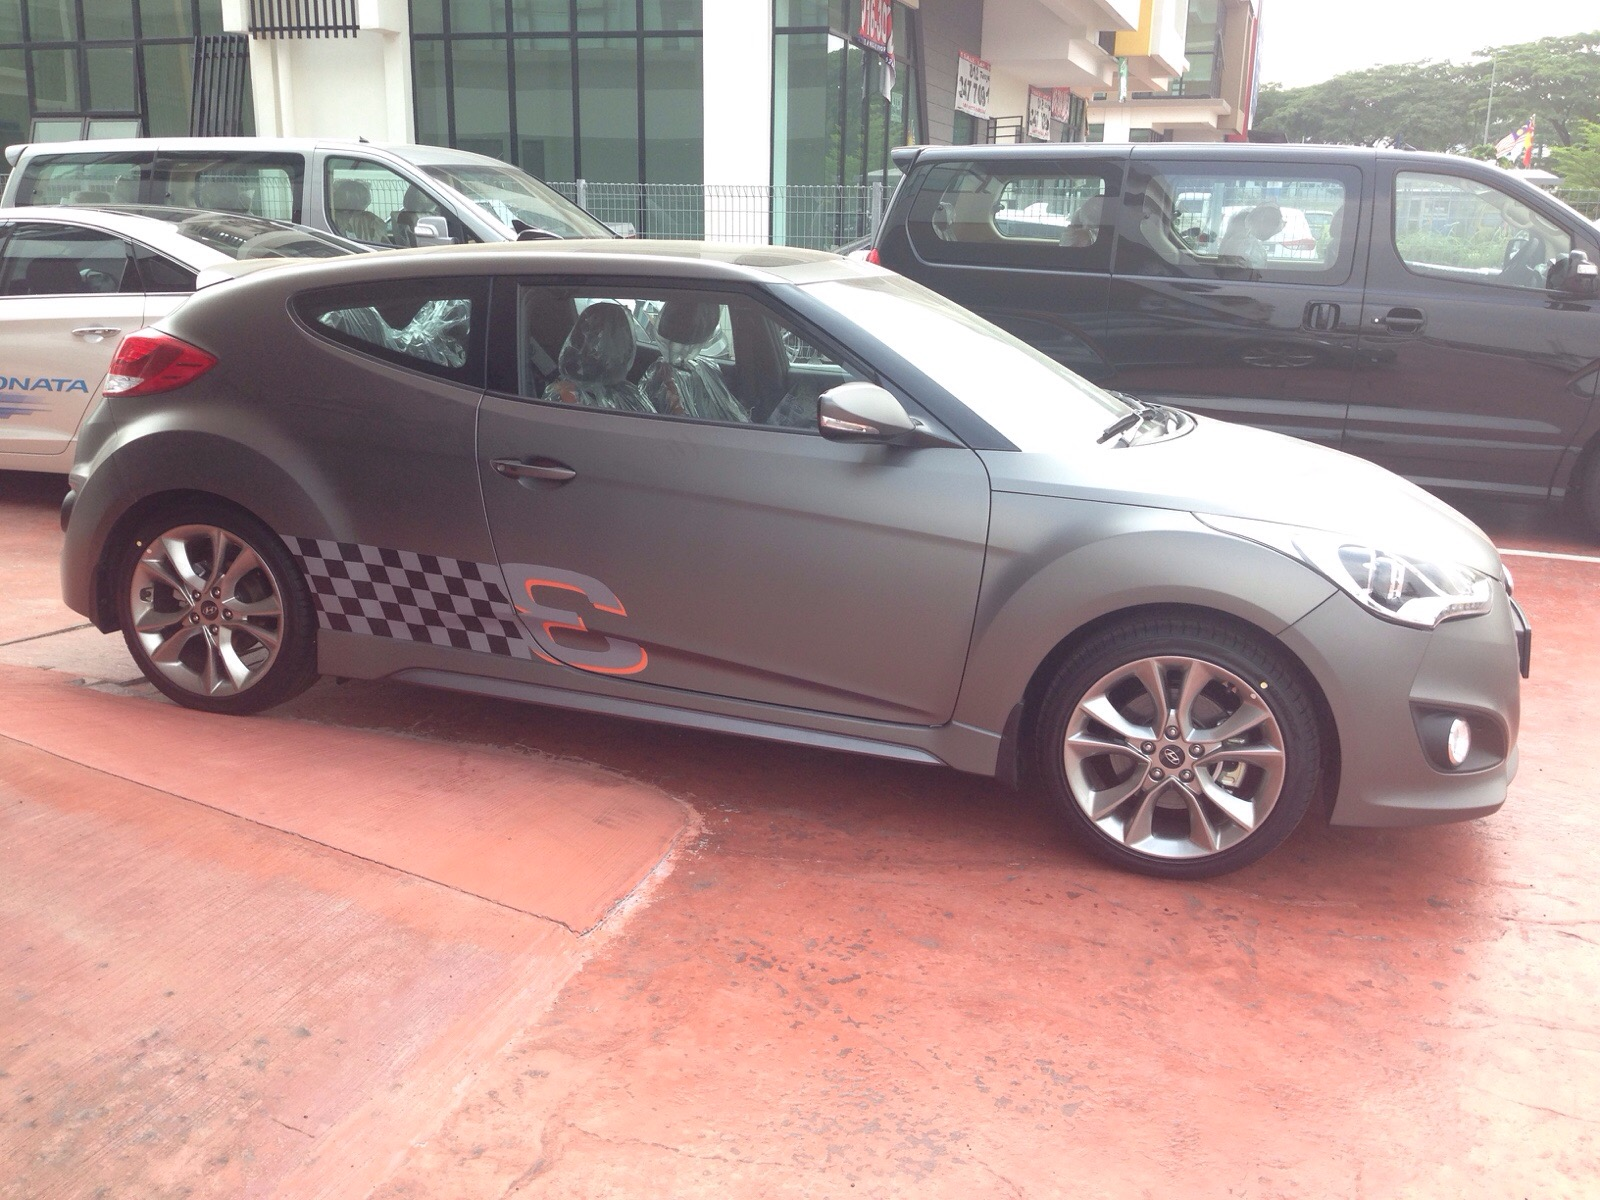 hyundai r turbo all com spec myautoworld veloster autonews new and